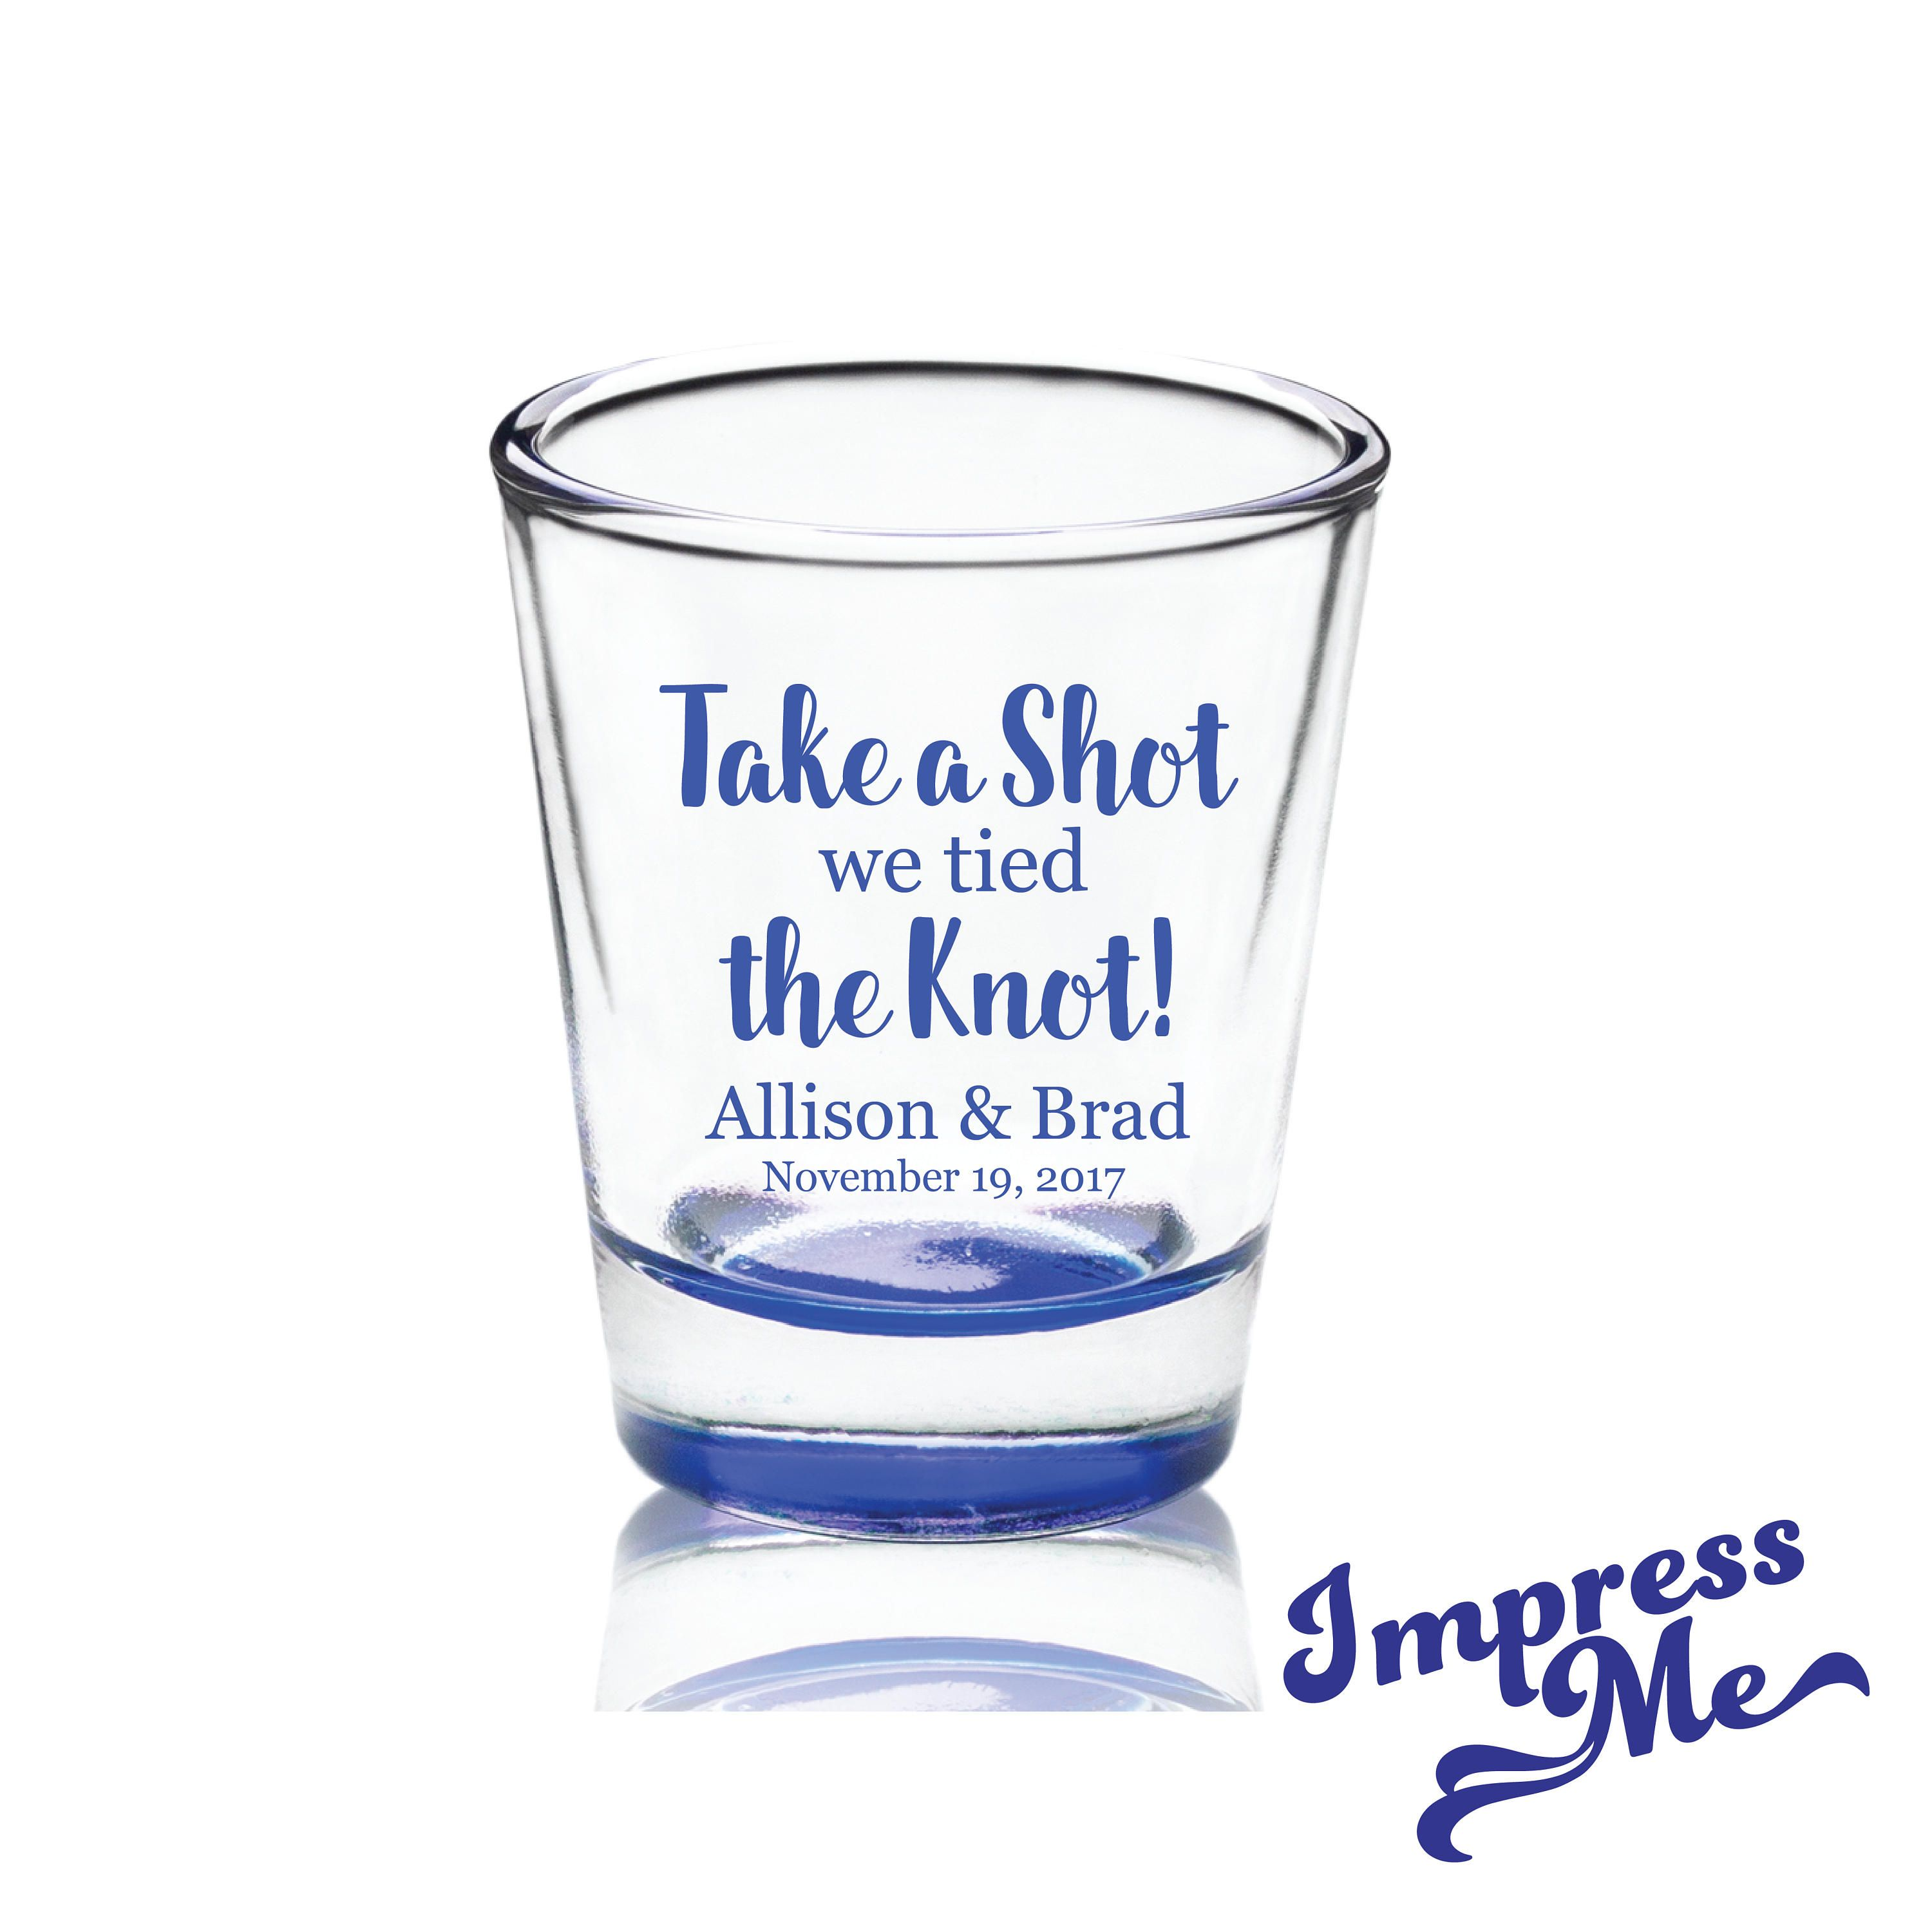 Pin by Impress Me on Impress Me | Pinterest | Shot glasses